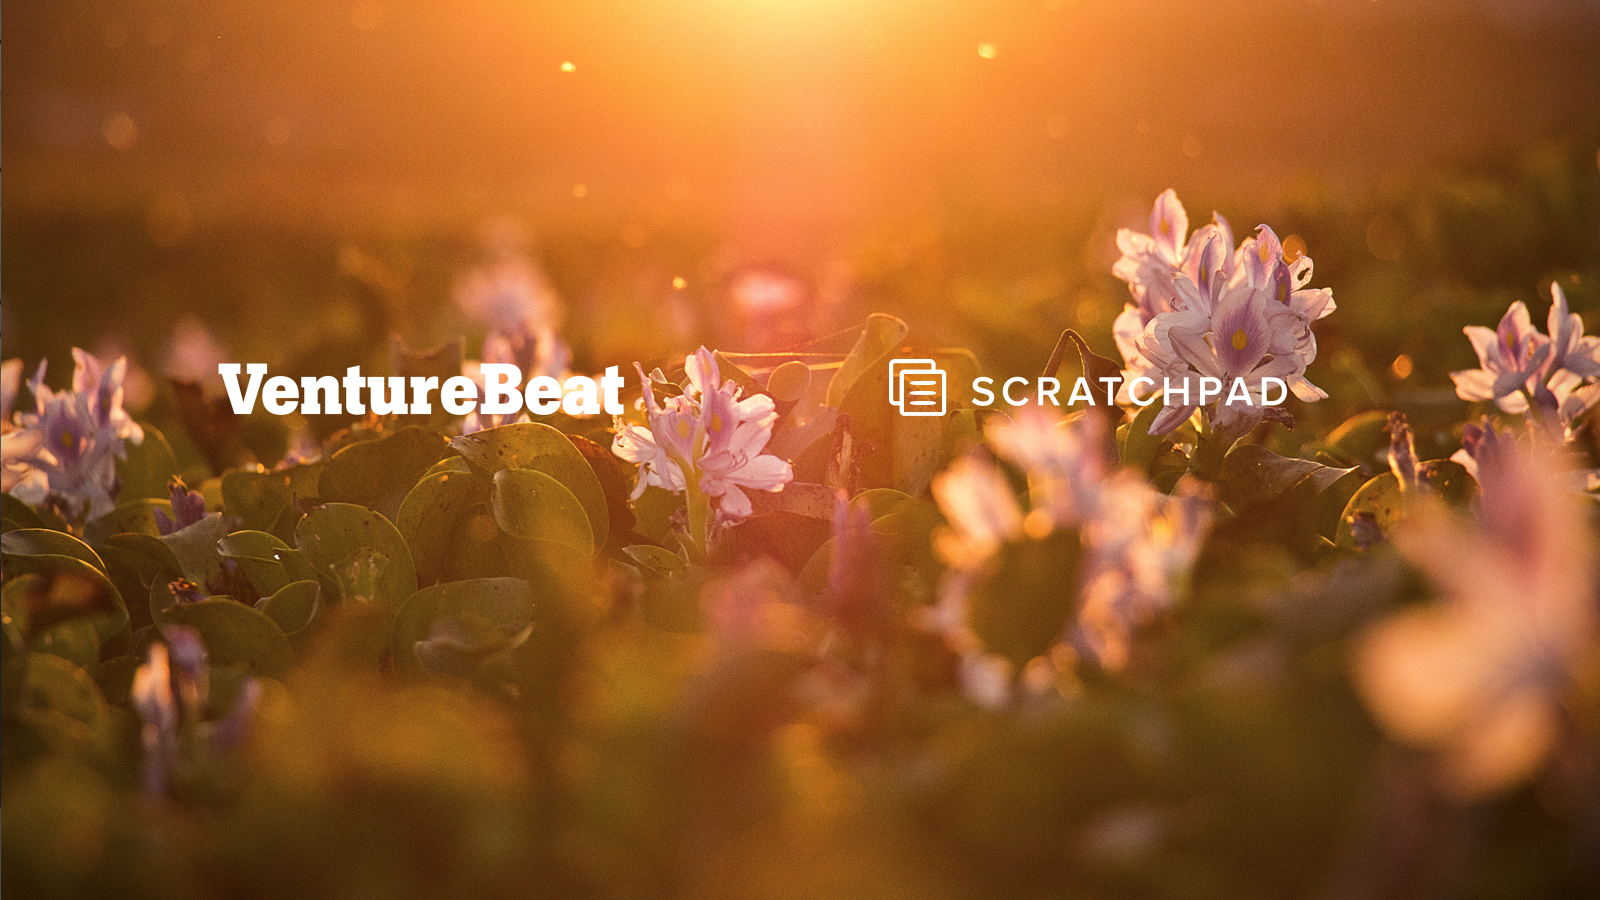 Scratchpad raises $13 million to power-up Salesforce with a productivity workspace for sales teams